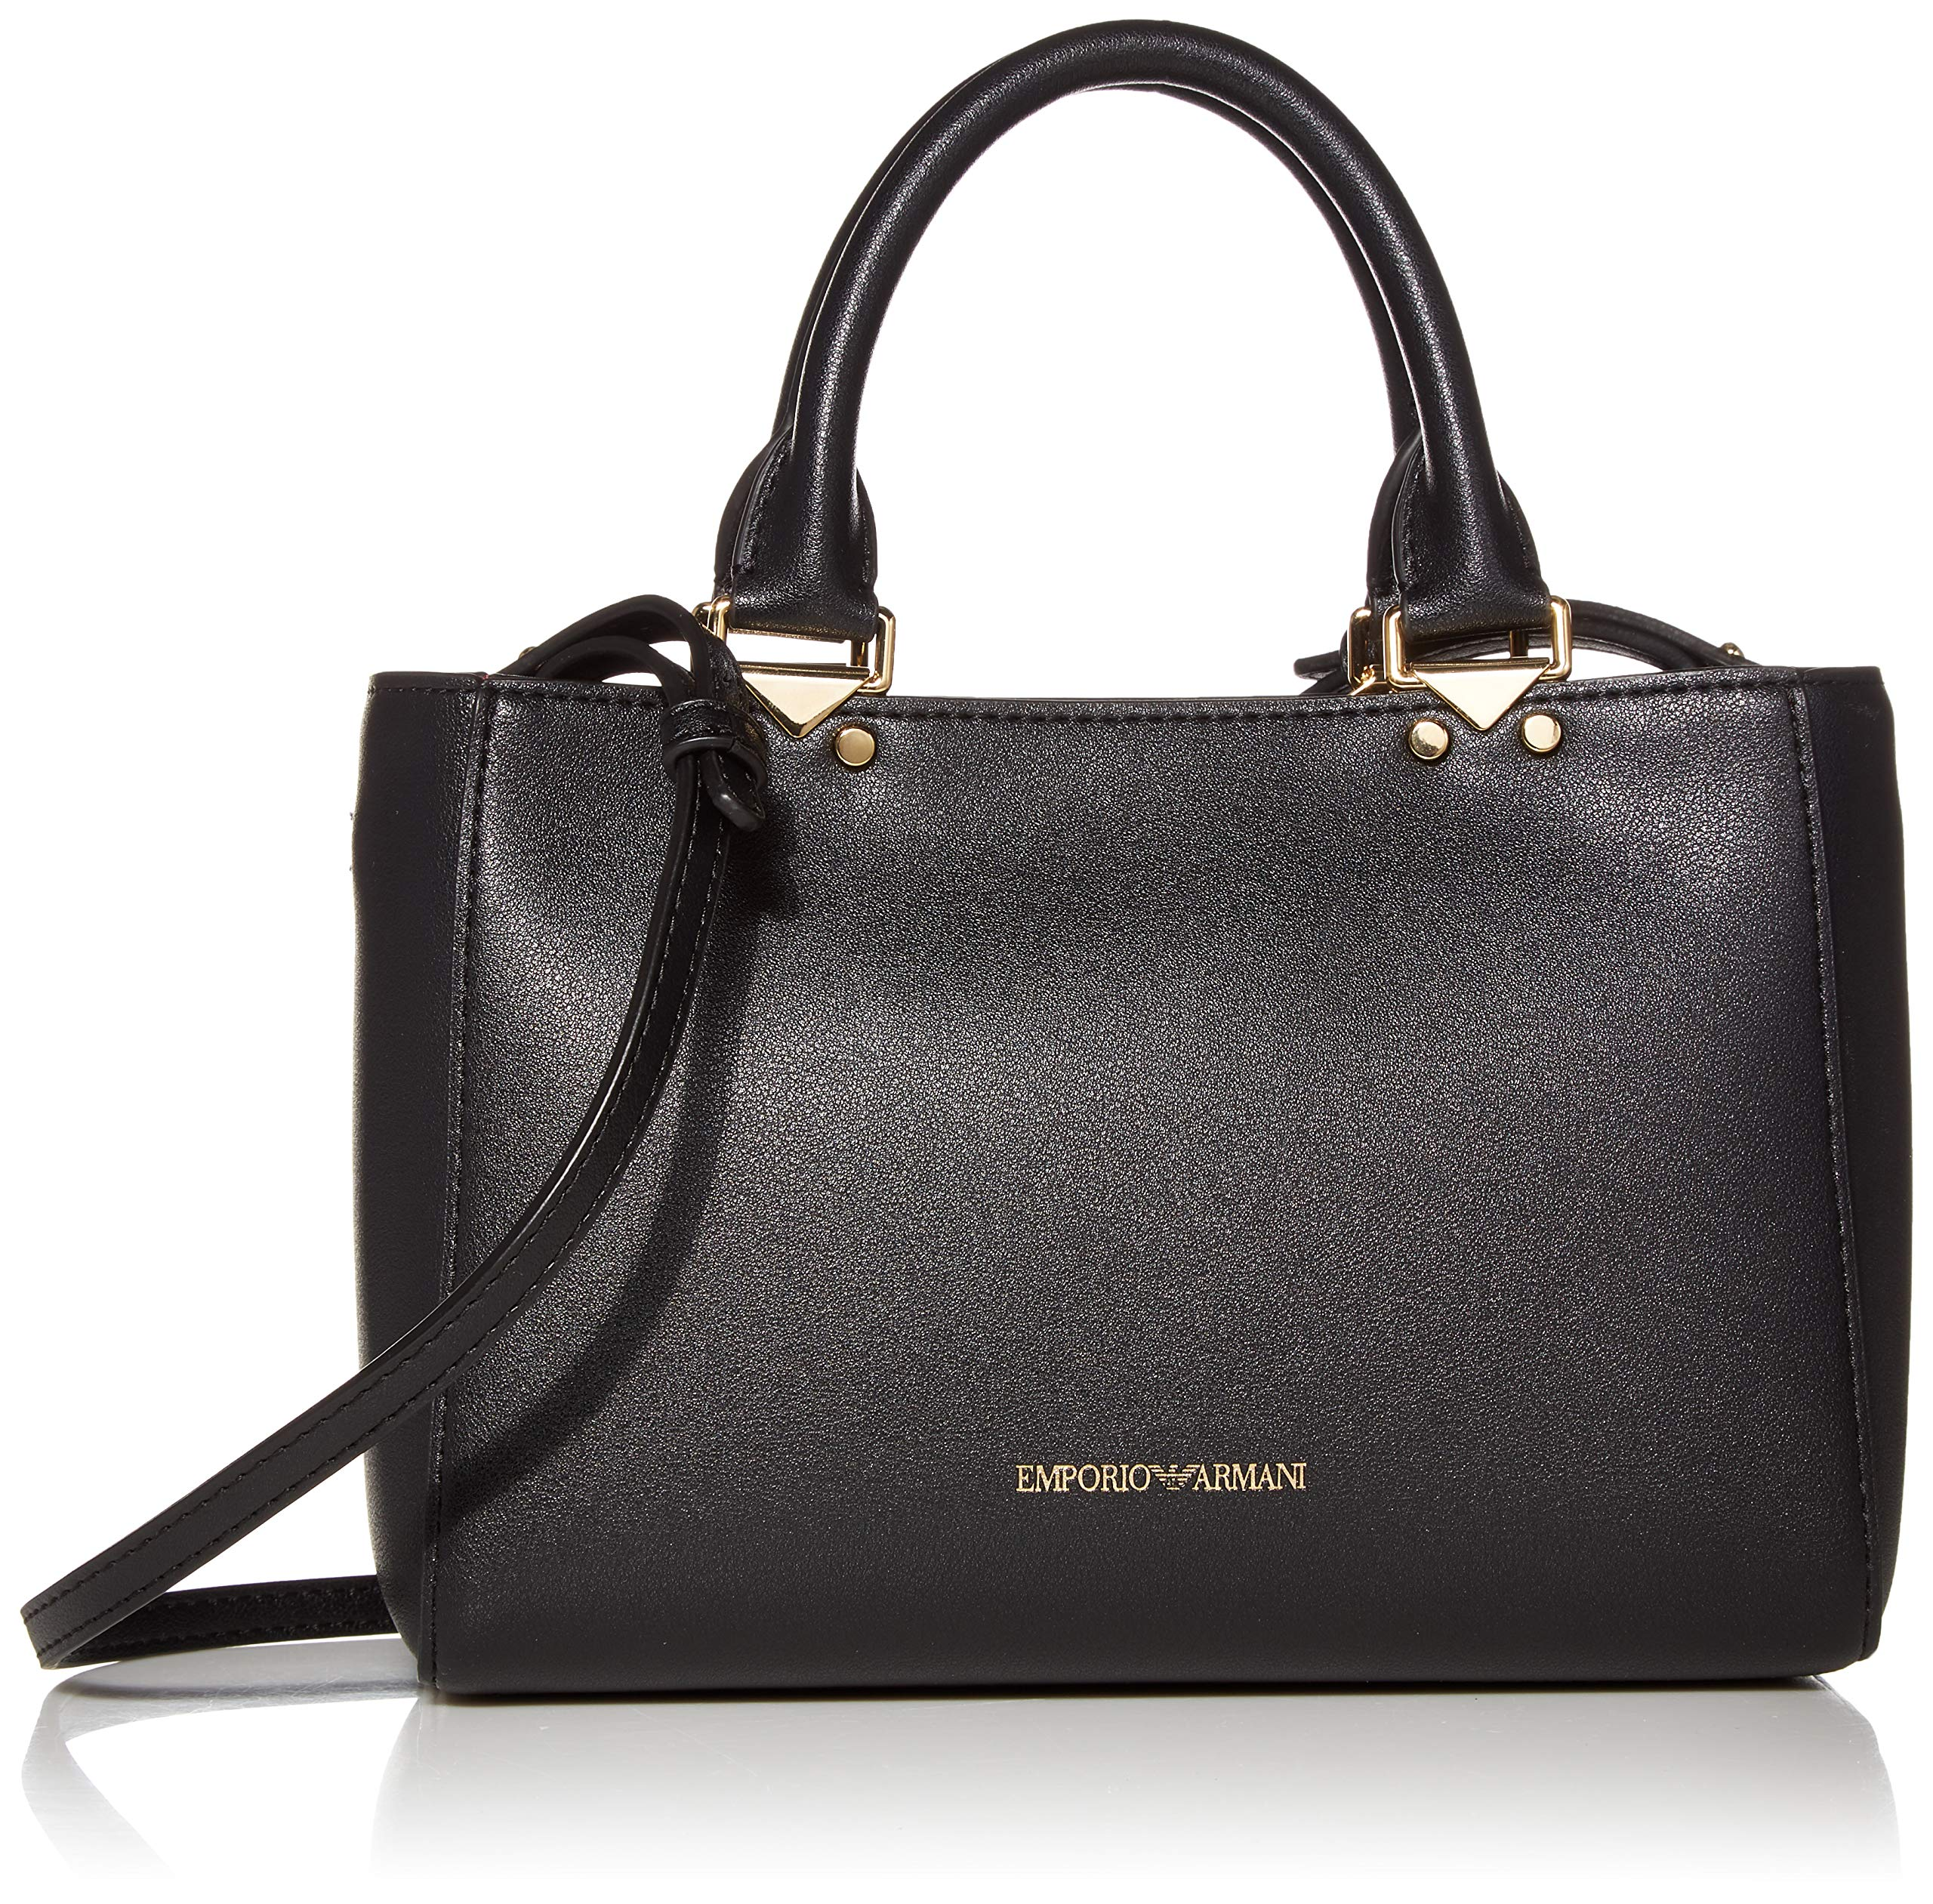 Emporio Armani Designer Small Top Handle Hand Bag - wiihuu